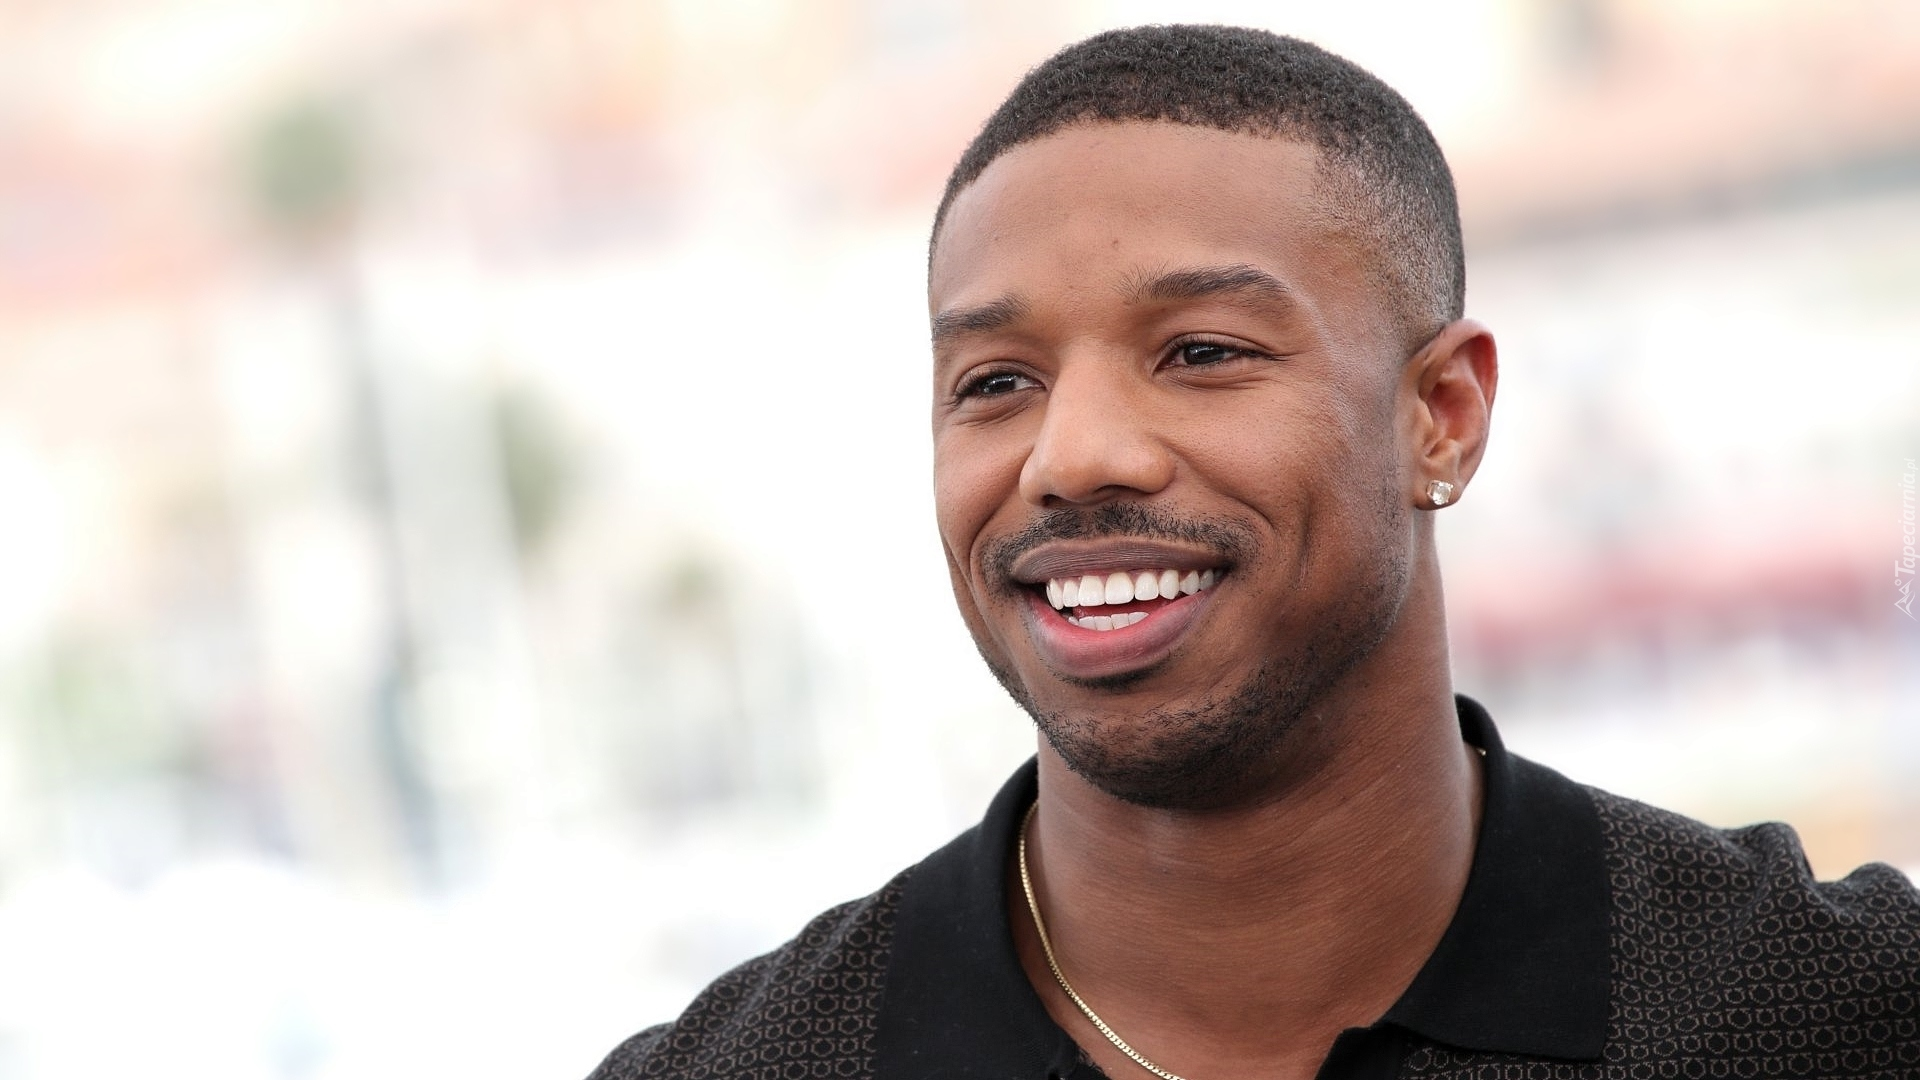 michael b jordan. Black Bedroom Furniture Sets. Home Design Ideas